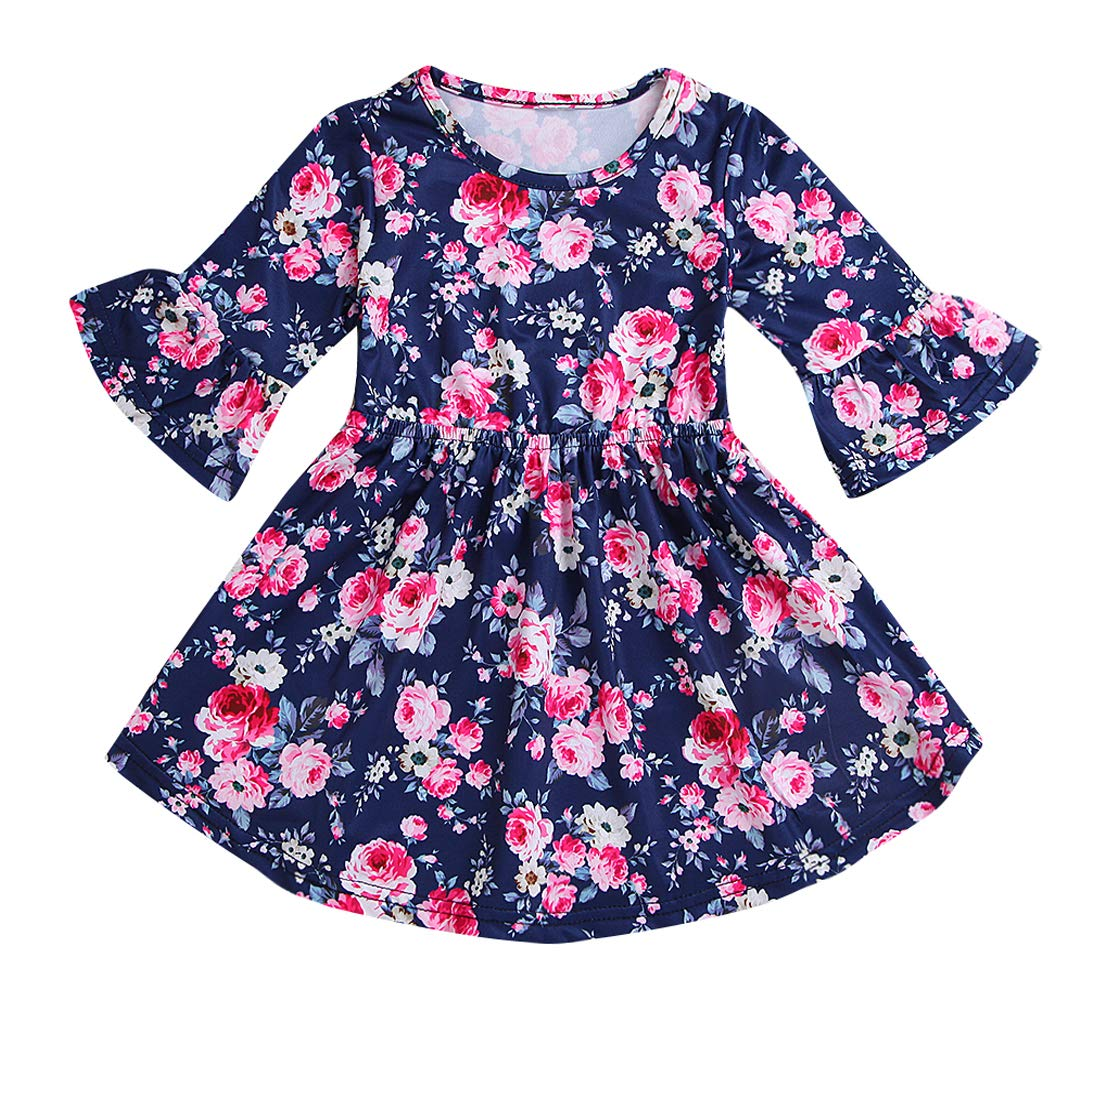 Toddler Kid Baby Girl Dress Floral Ruffle Half Sleeve Skirt Fall Clothes Set